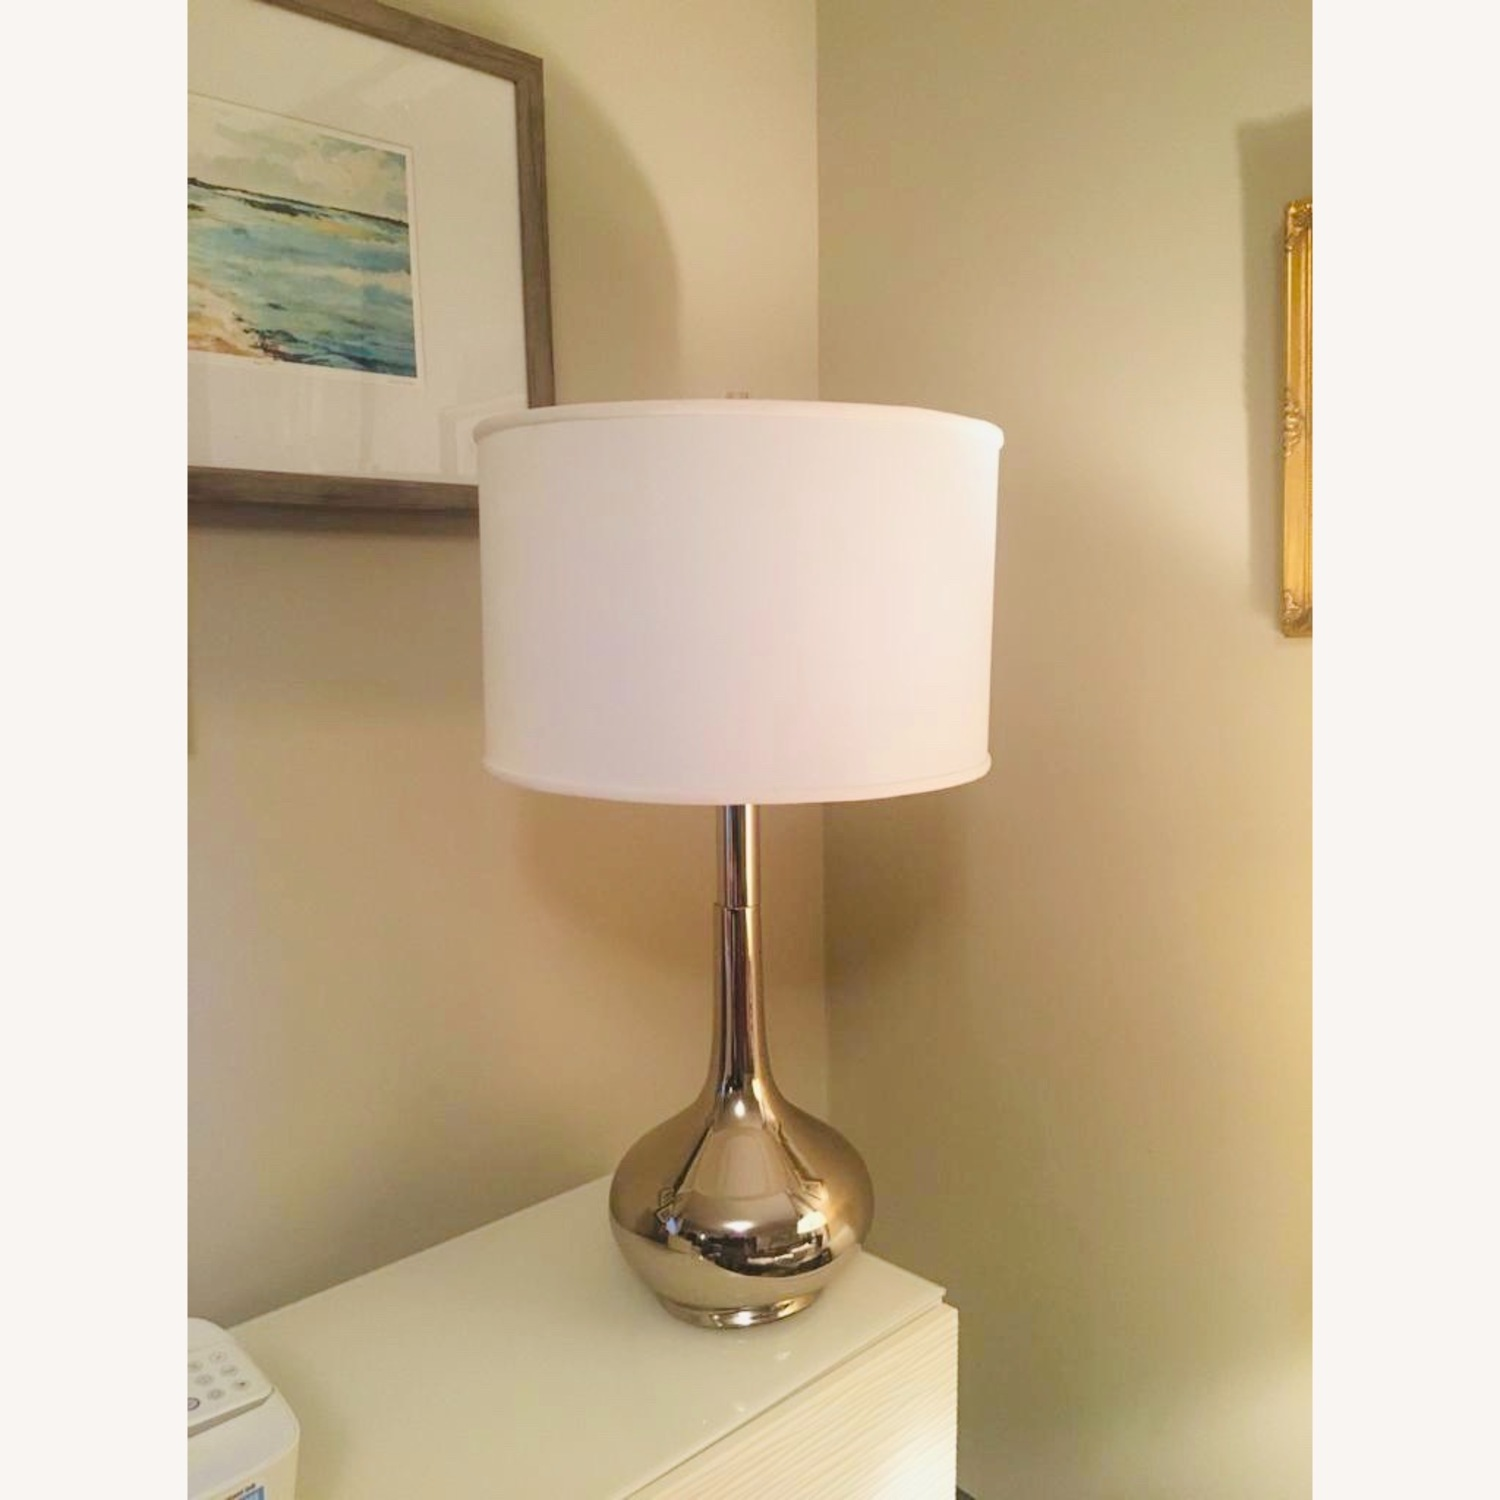 Home Goods Metal Based Lamps & Large Drum Shades (2) - image-3